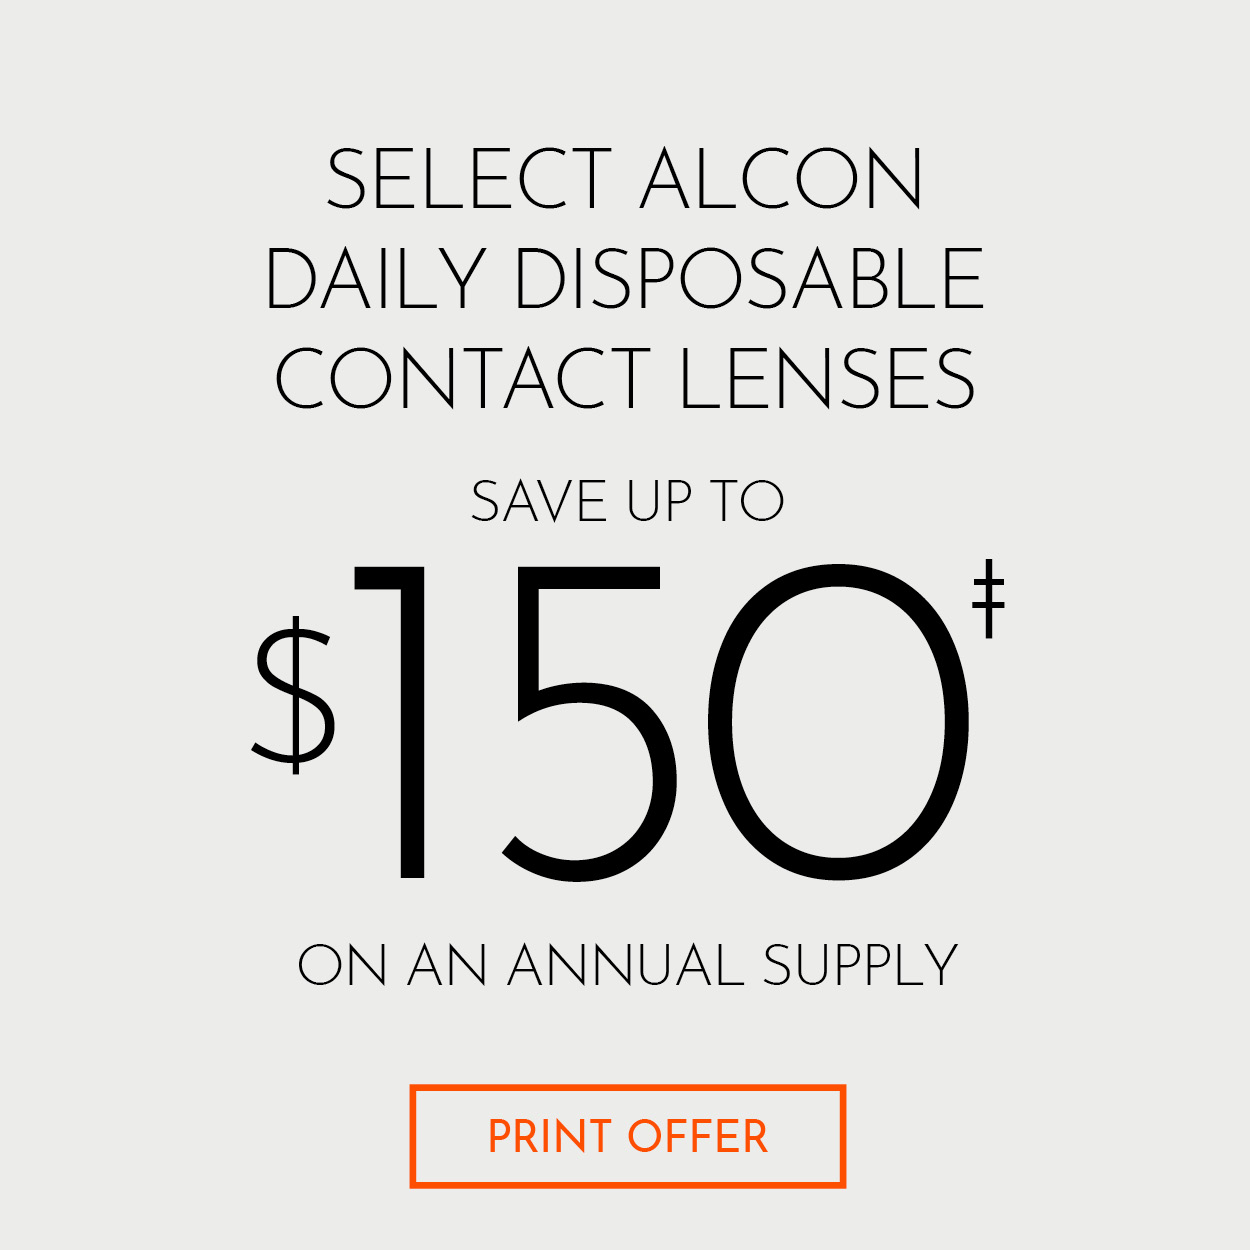 Alcon Daily Disposable Contact Lenses Save up to $150 Rebate